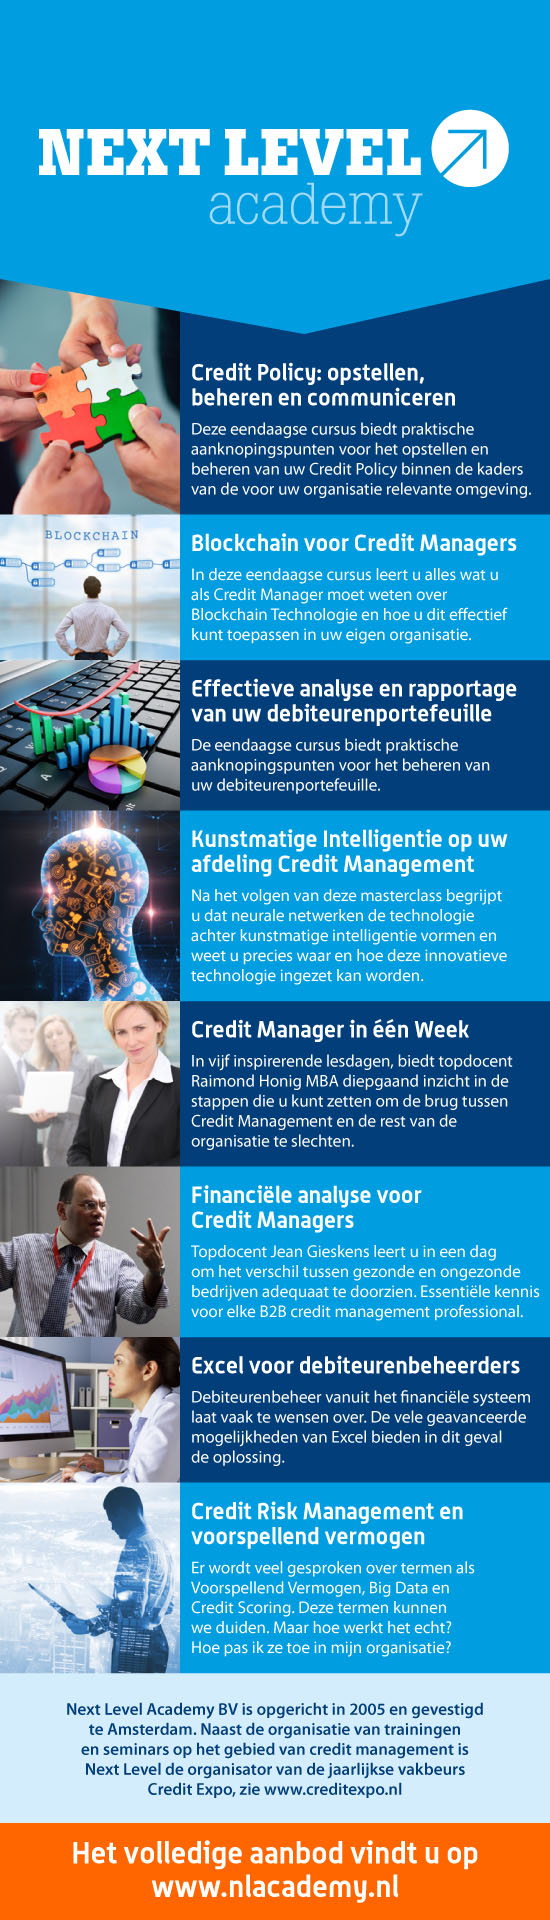 Next Level Academy opleiding GRATIS bij MaxCredible licenties.